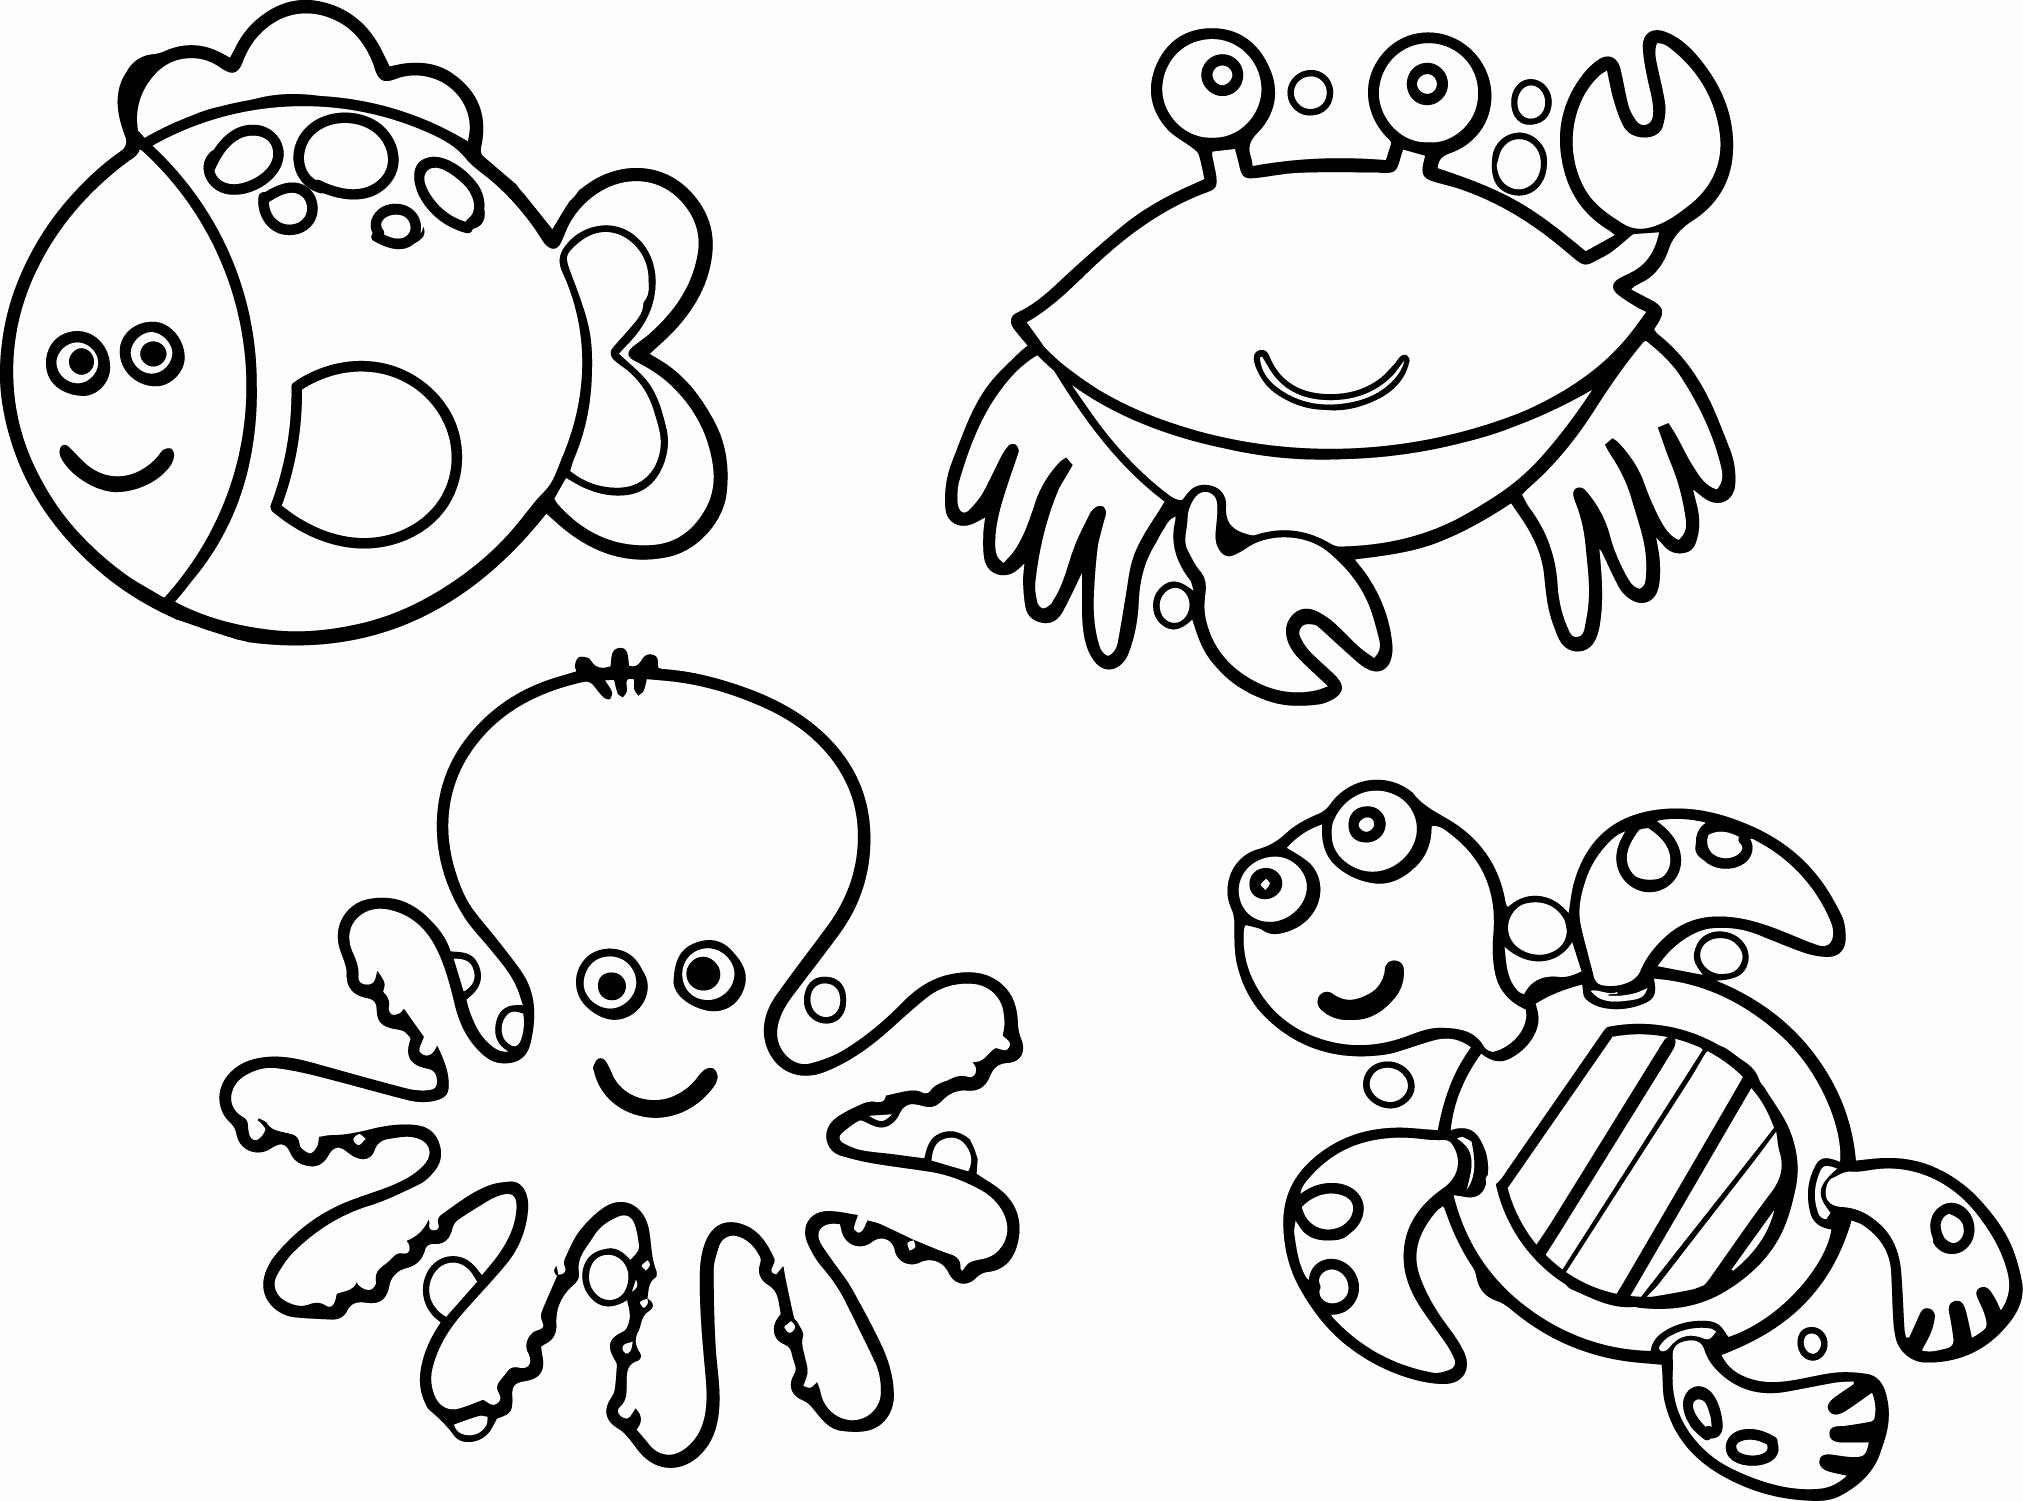 Water Animals Coloring Pages Through The Thousands Of Images On The Net Concerning Water Animals Coloring Pages Dieren Kleurplaten Dieren Tekenen Zeedieren